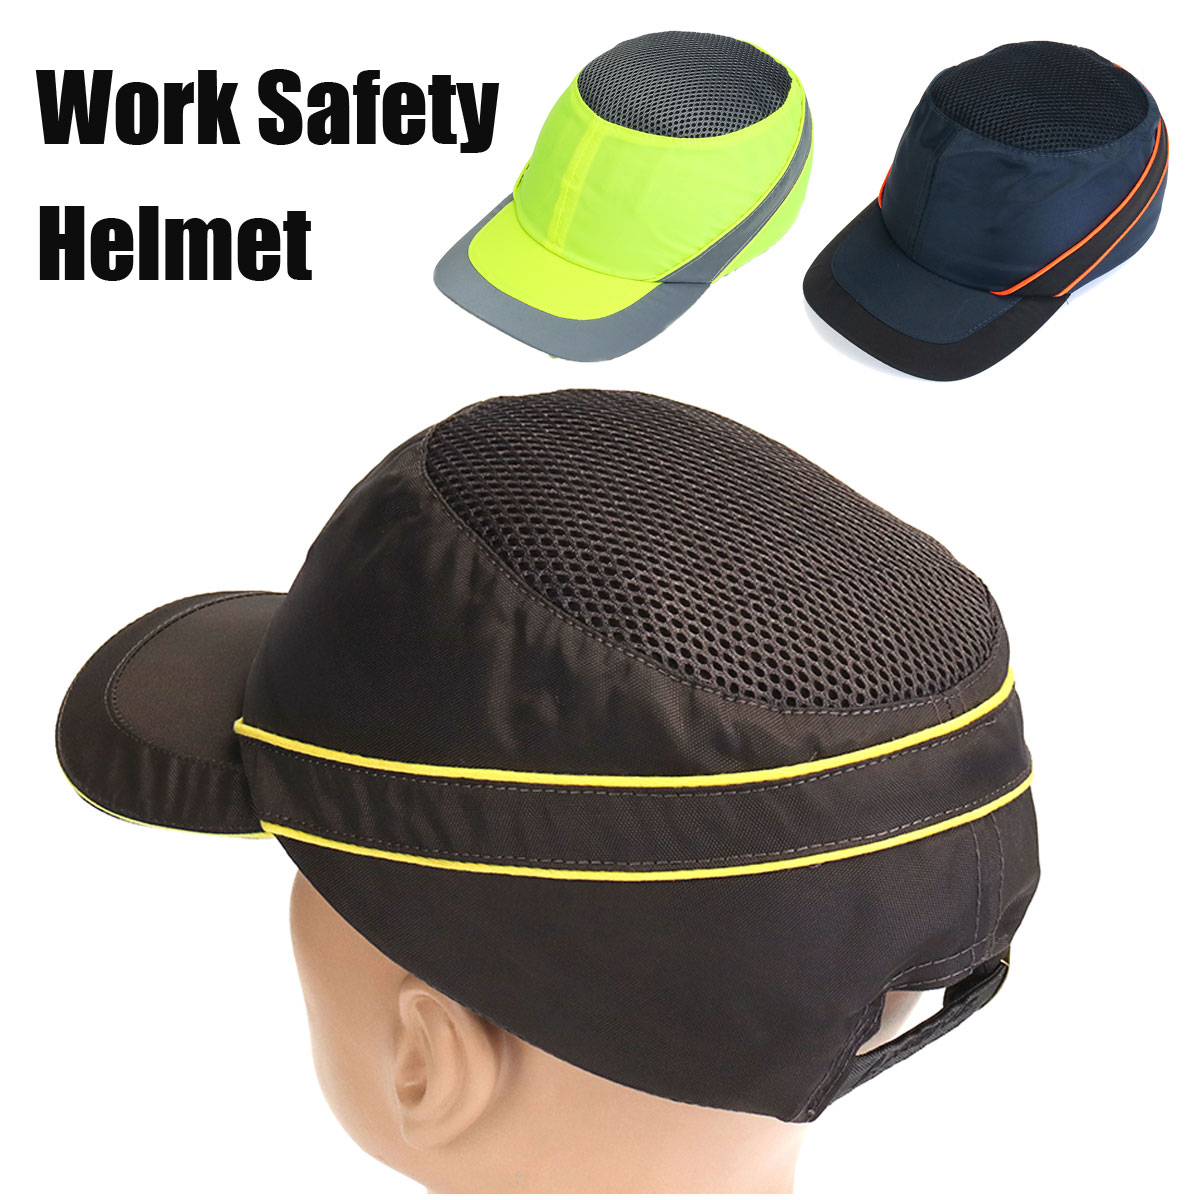 Fashion Sunscreen Cap Work Safety Helmet Breathable Anti-impact Light Weight Construction Helmet Self Defense Weapons bump cap work safety helmet summer breathable security anti impact lightweight helmets fashion casual sunscreen protective hat